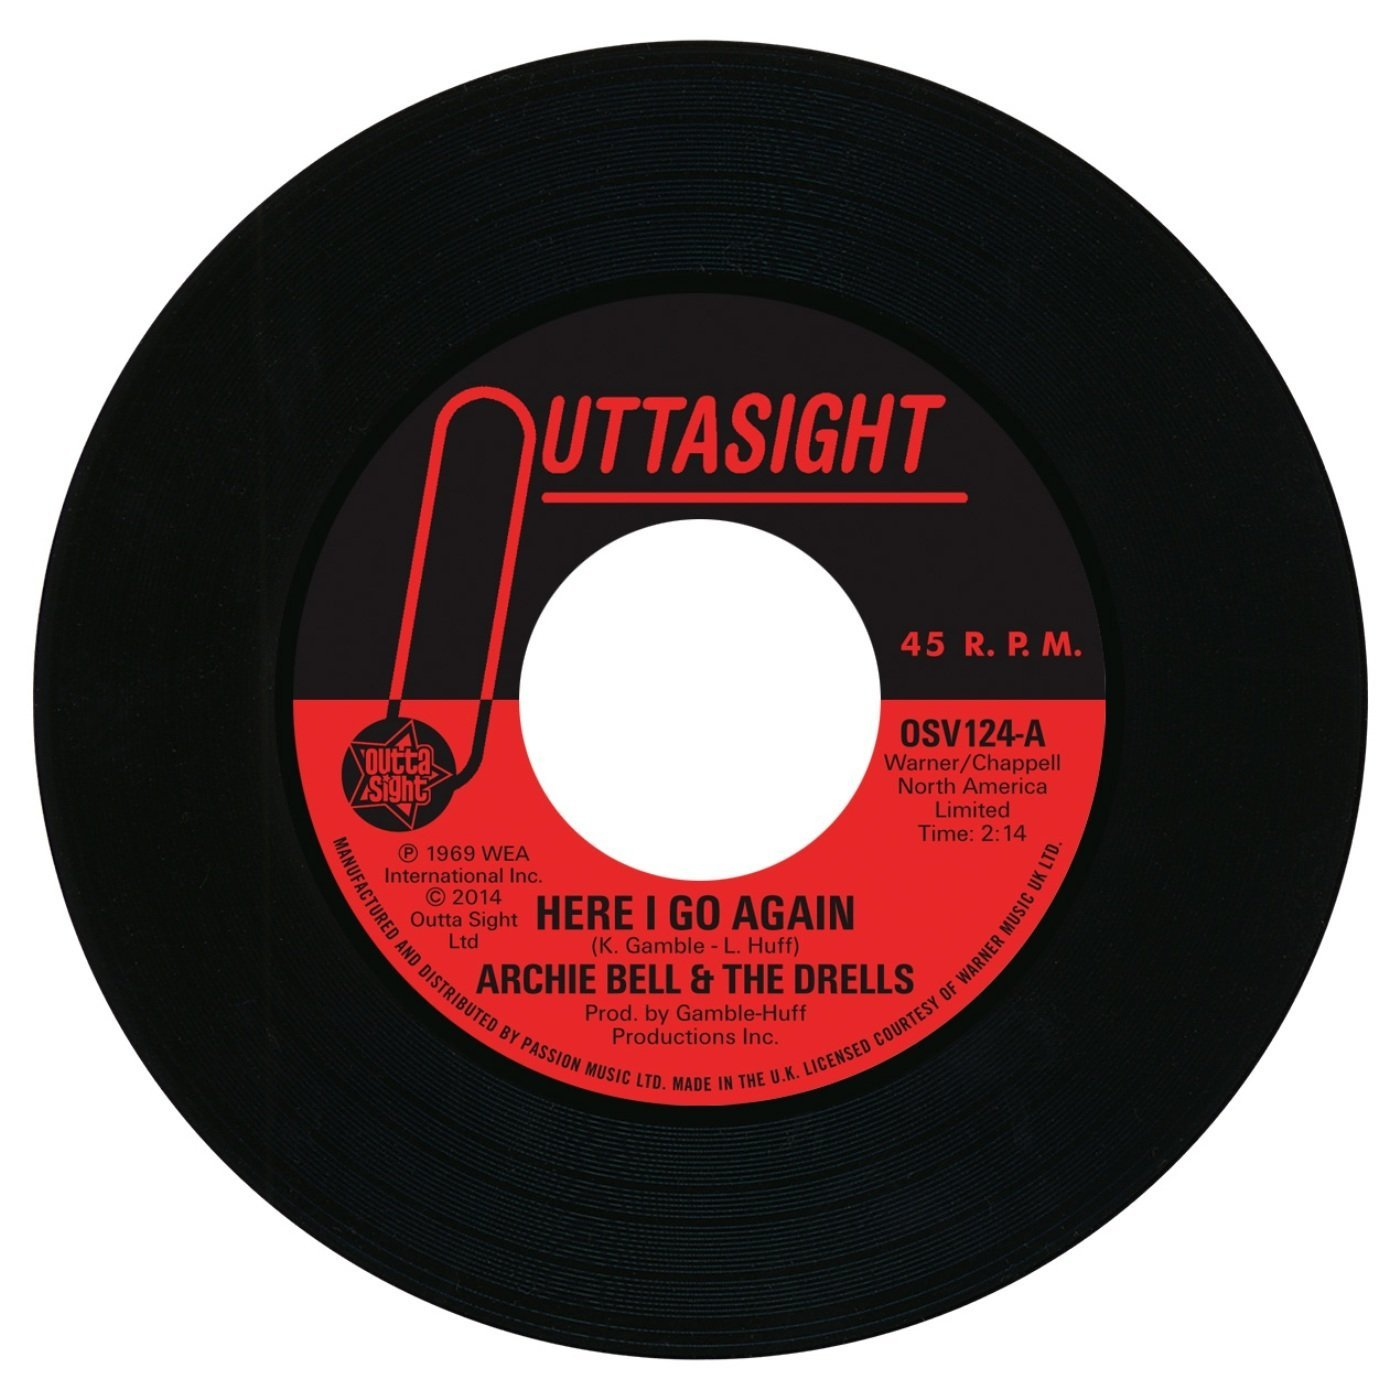 Archie Bell & The Drells – Here I Go Again / Tighten Up 45 (Outta Sight) 7″ Vinyl